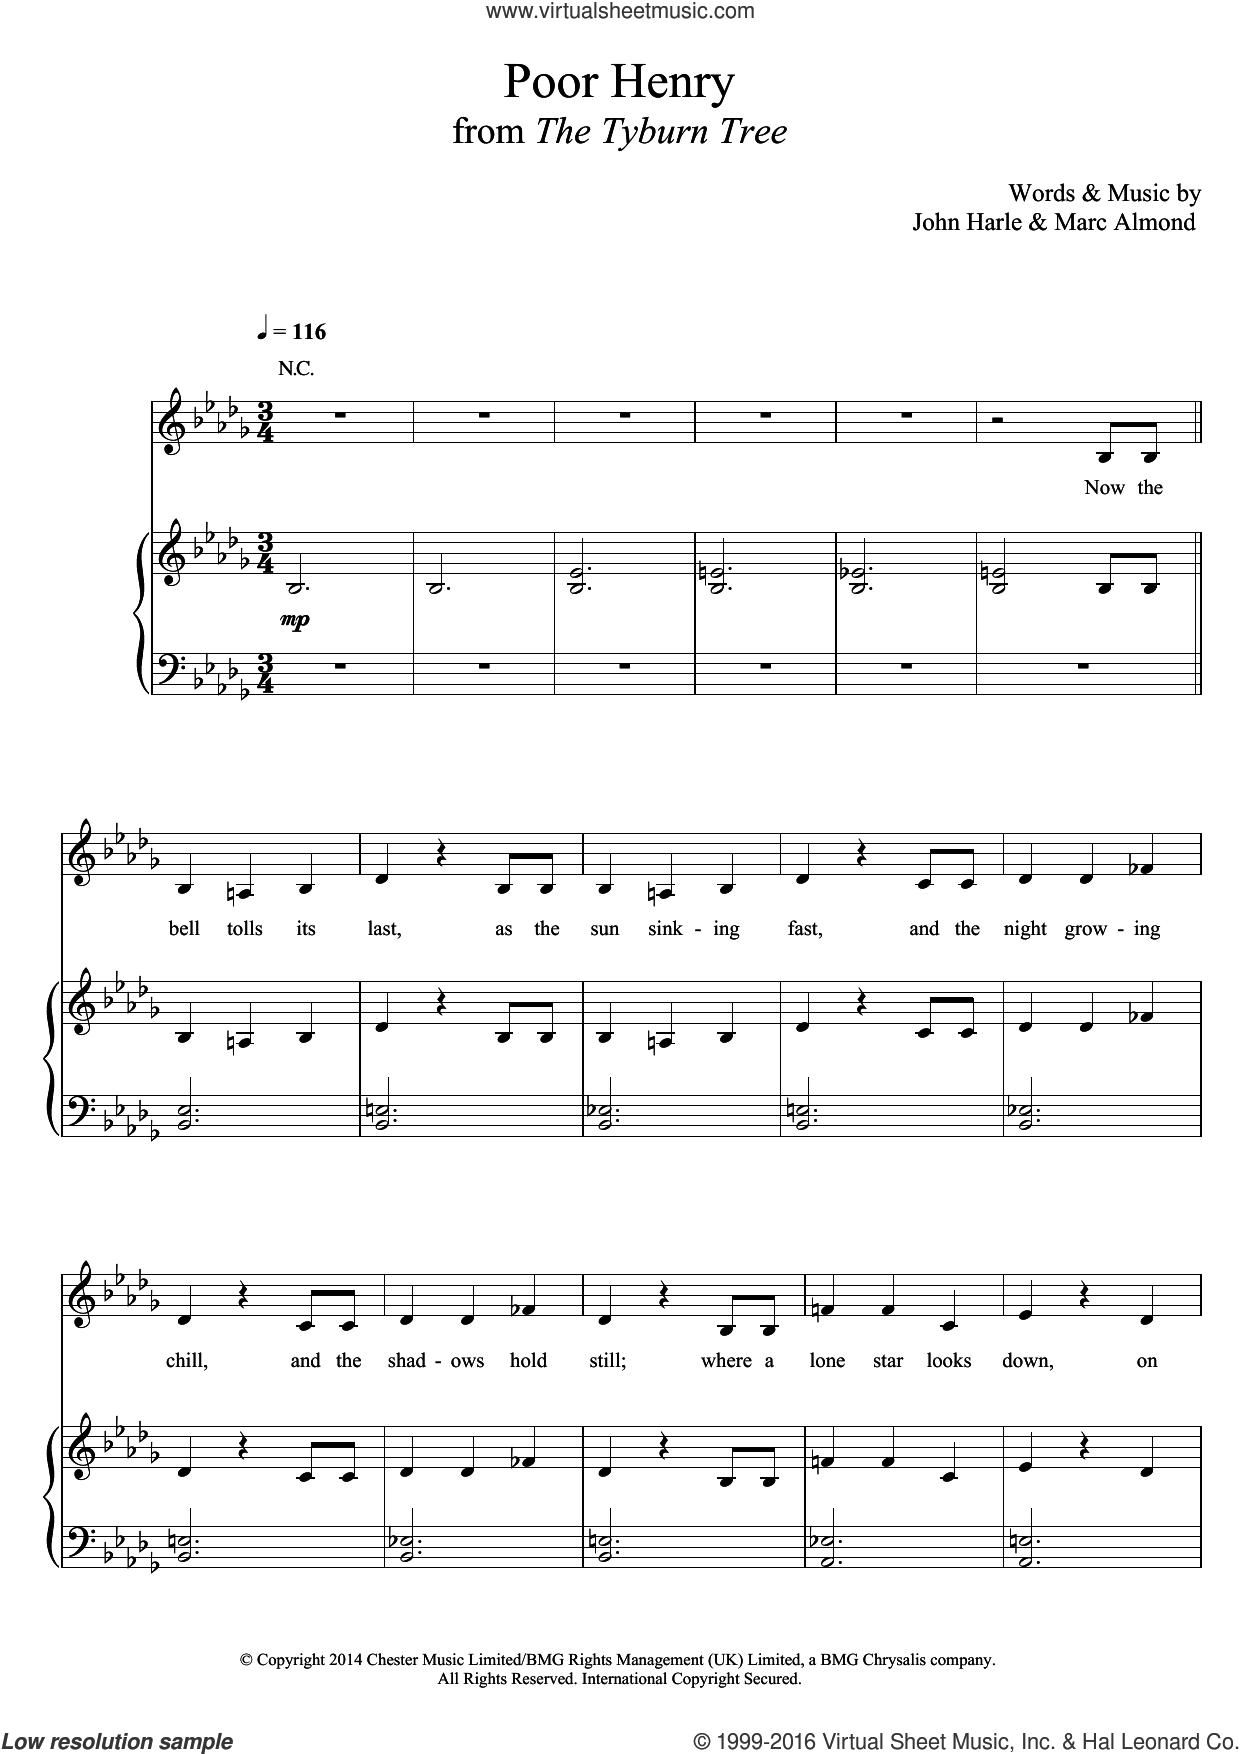 Poor Henry sheet music for voice, piano or guitar by Marc Almond